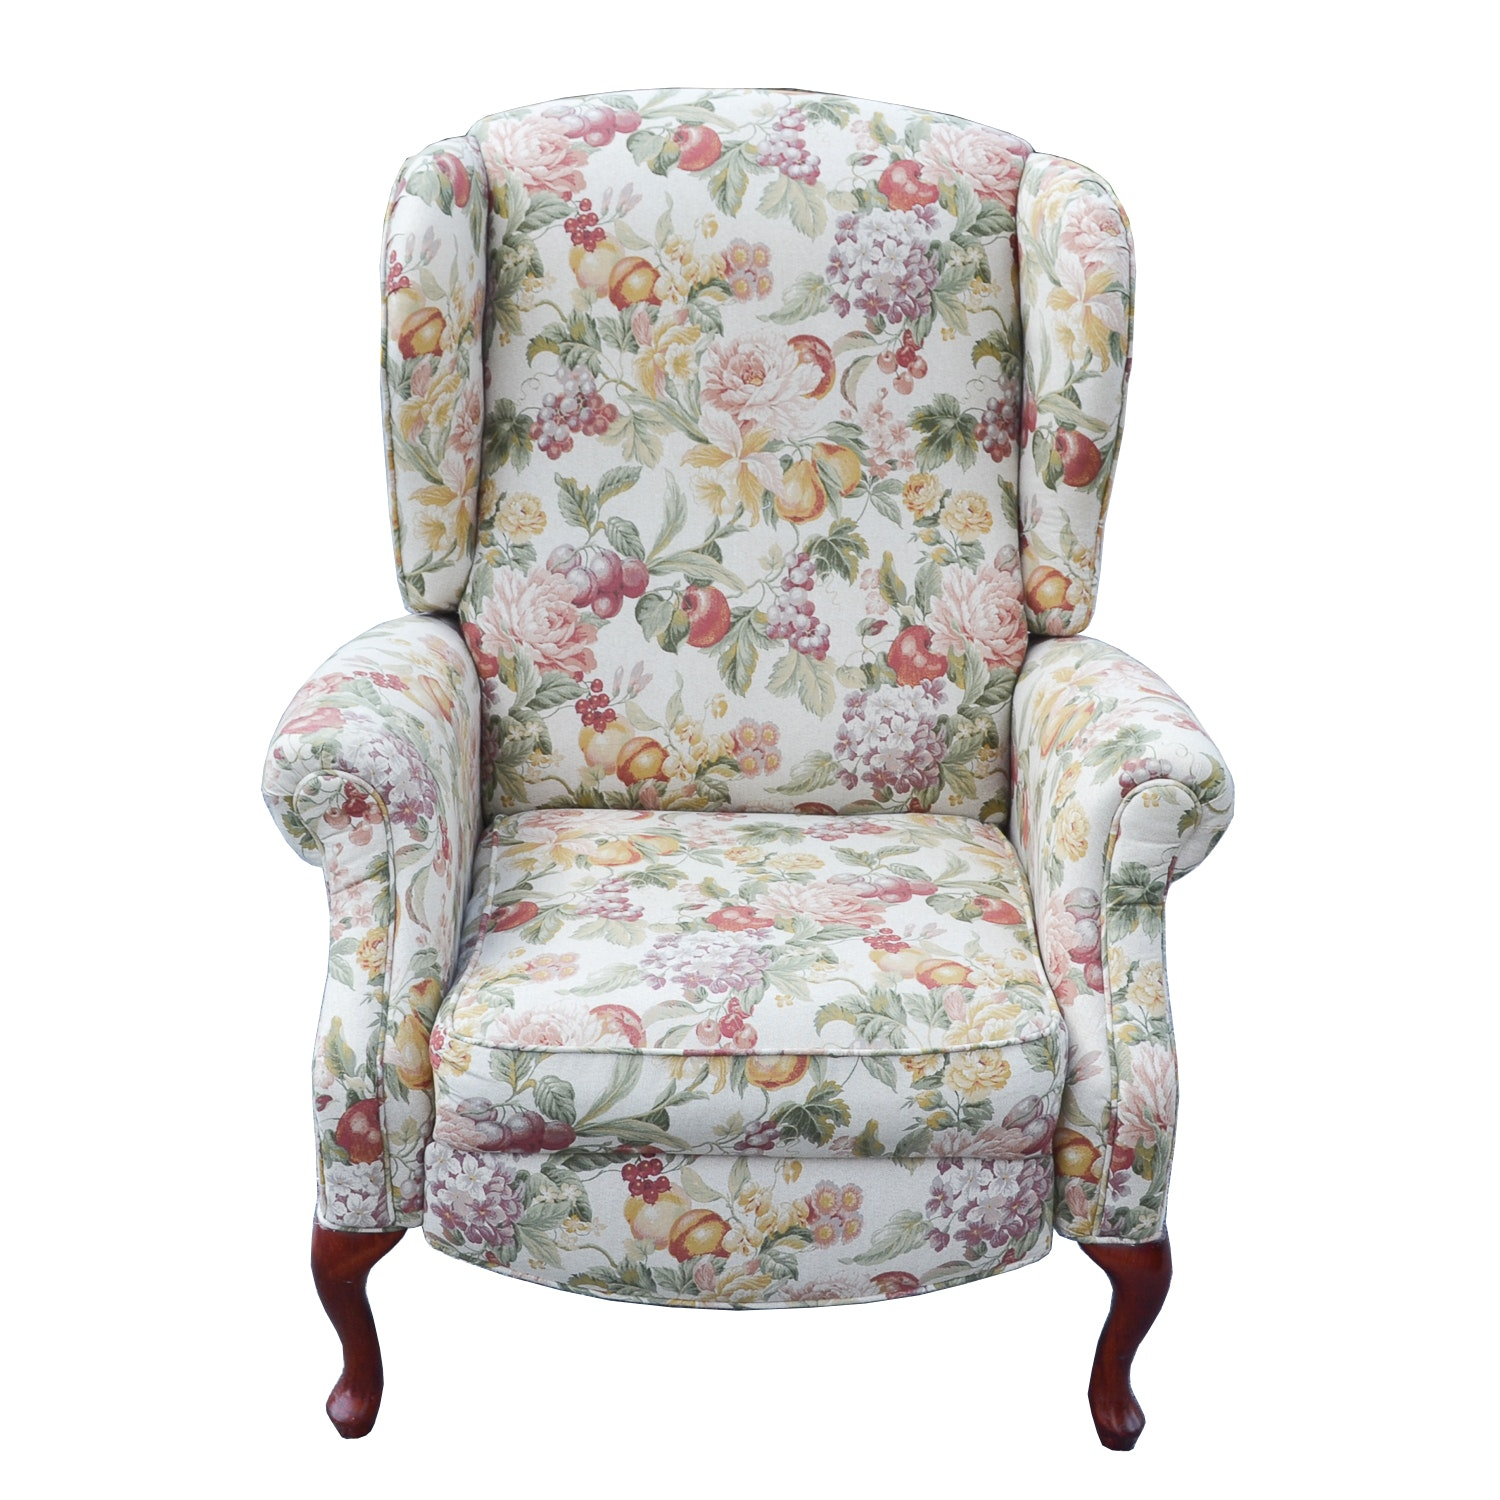 Queen Anne Style Wingback Reclining Chair